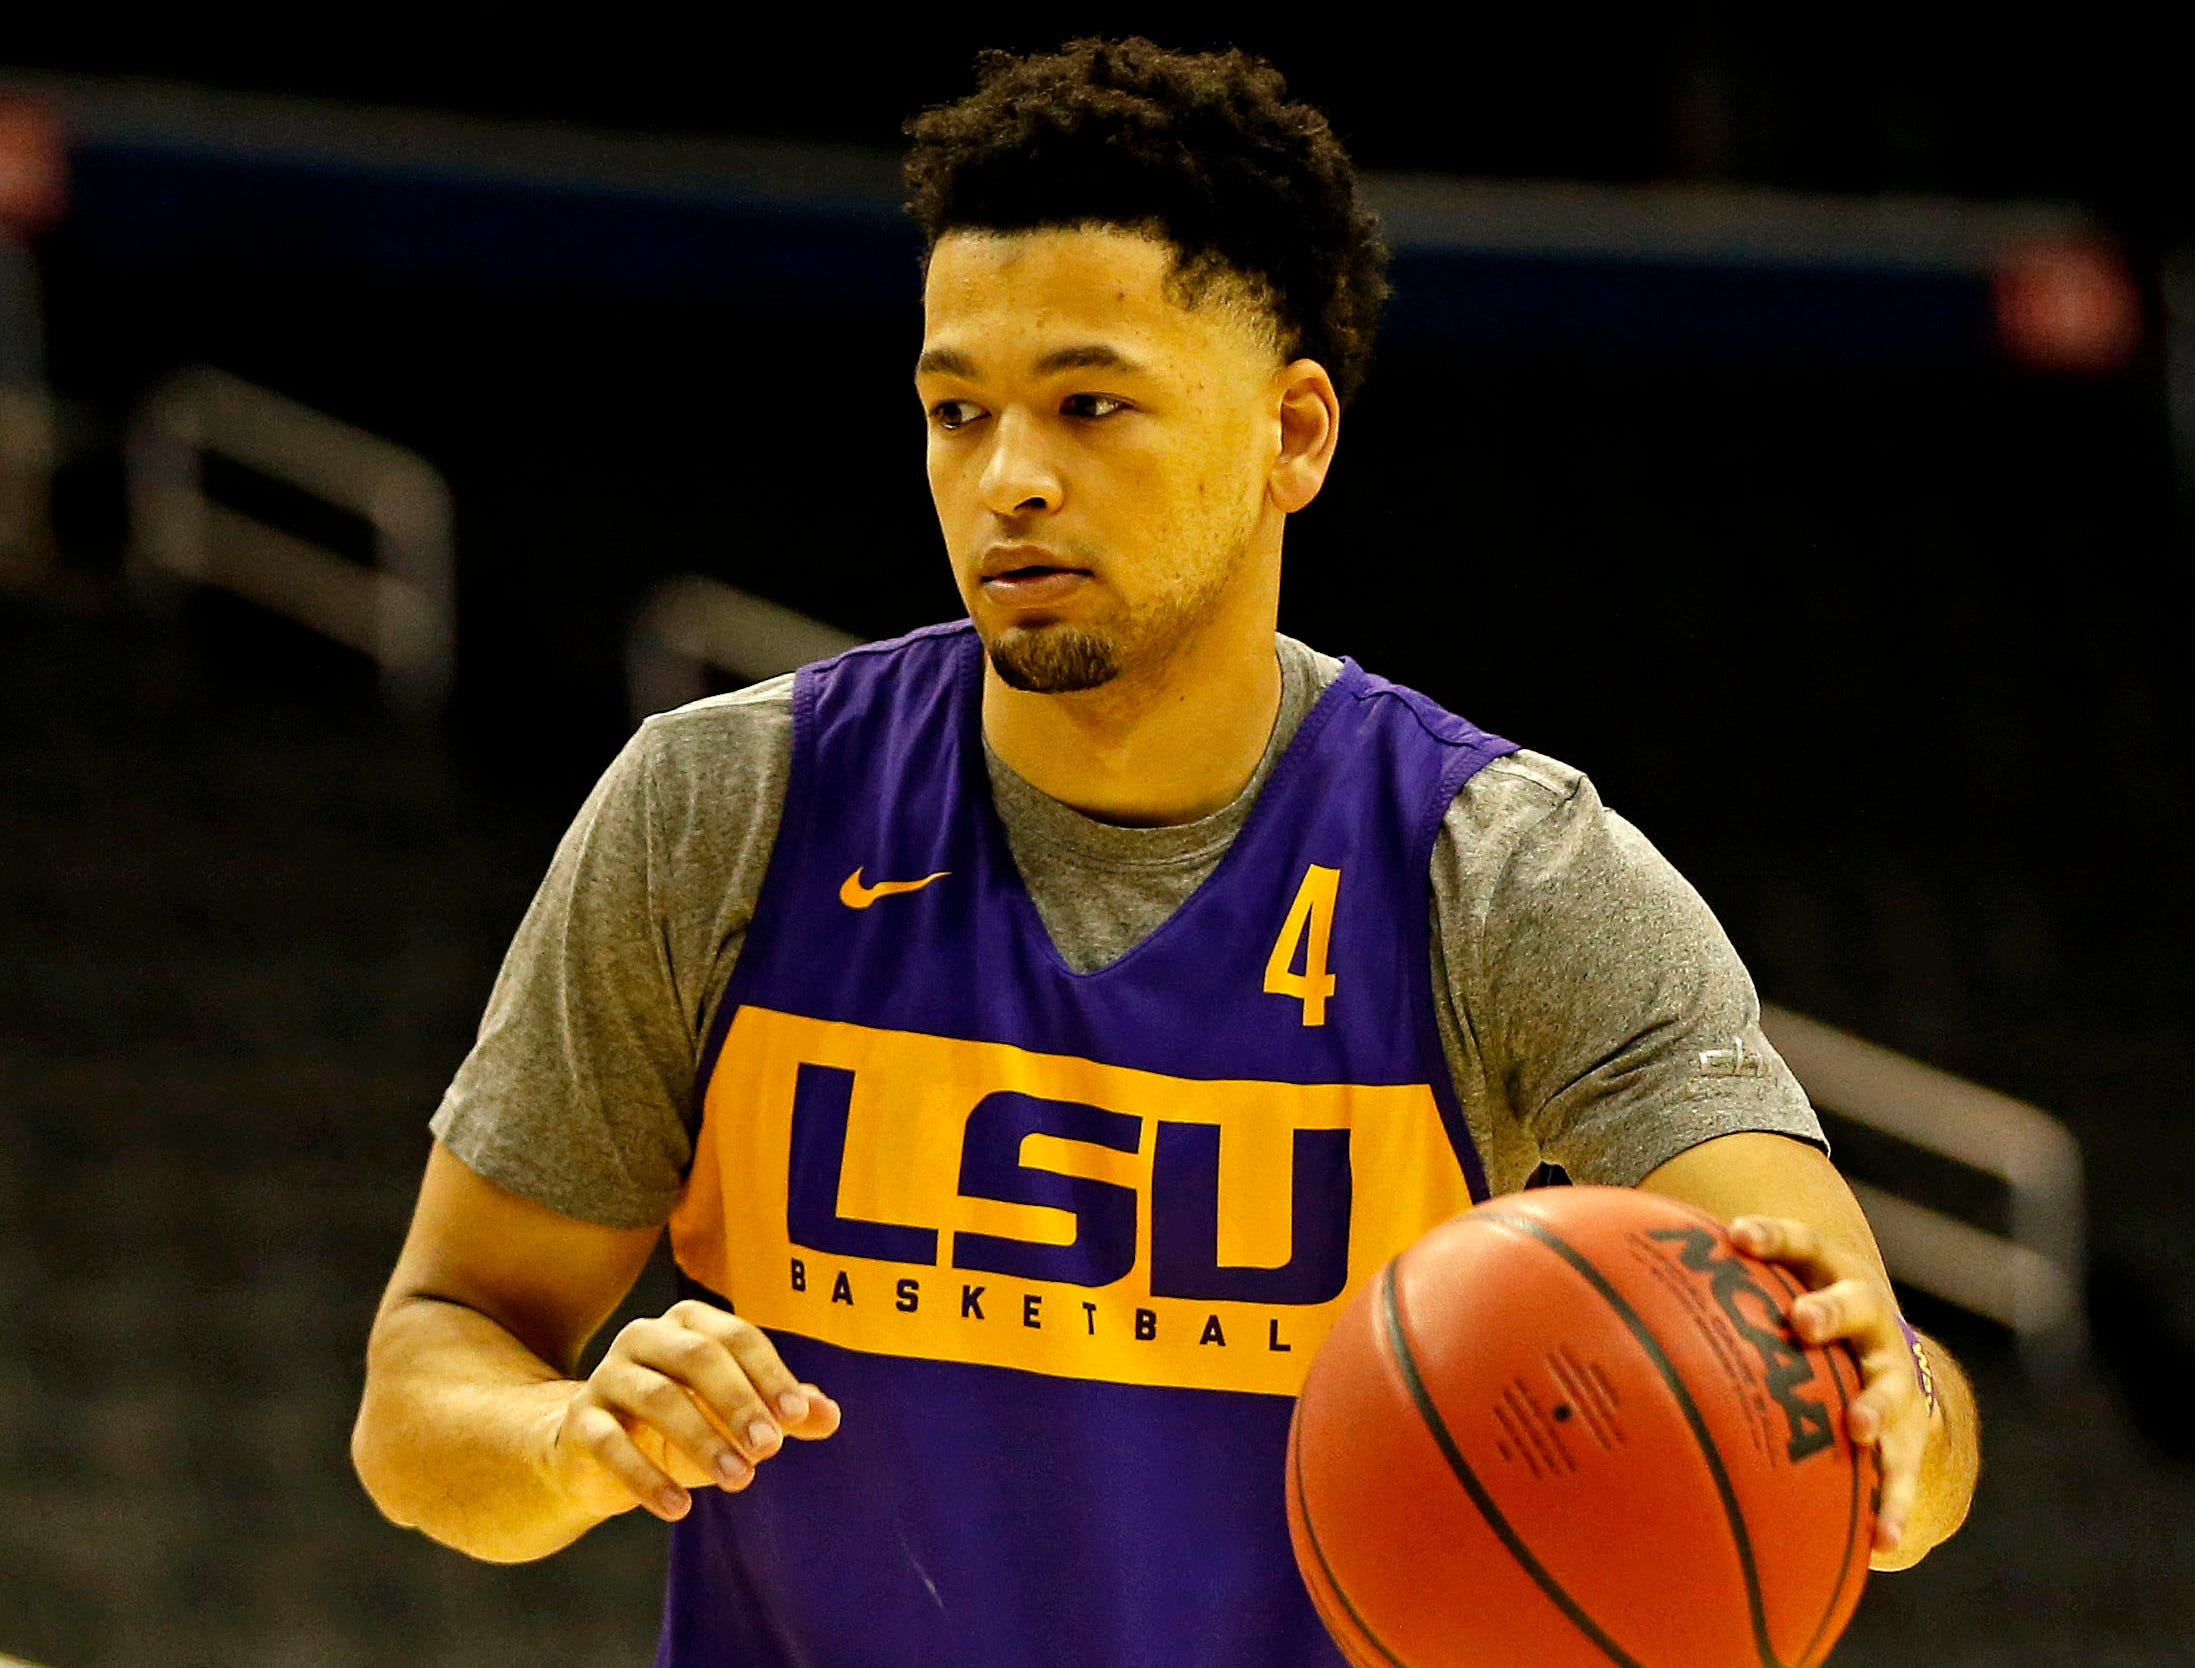 Mar 28, 2019; Washington, DC, USA; LSU Tigers guard Skylar Mays (4) handles the ball during practice for the east regional of the 2019 NCAA Tournament at Capital One Arena. Mandatory Credit: Amber Searls-USA TODAY Sports